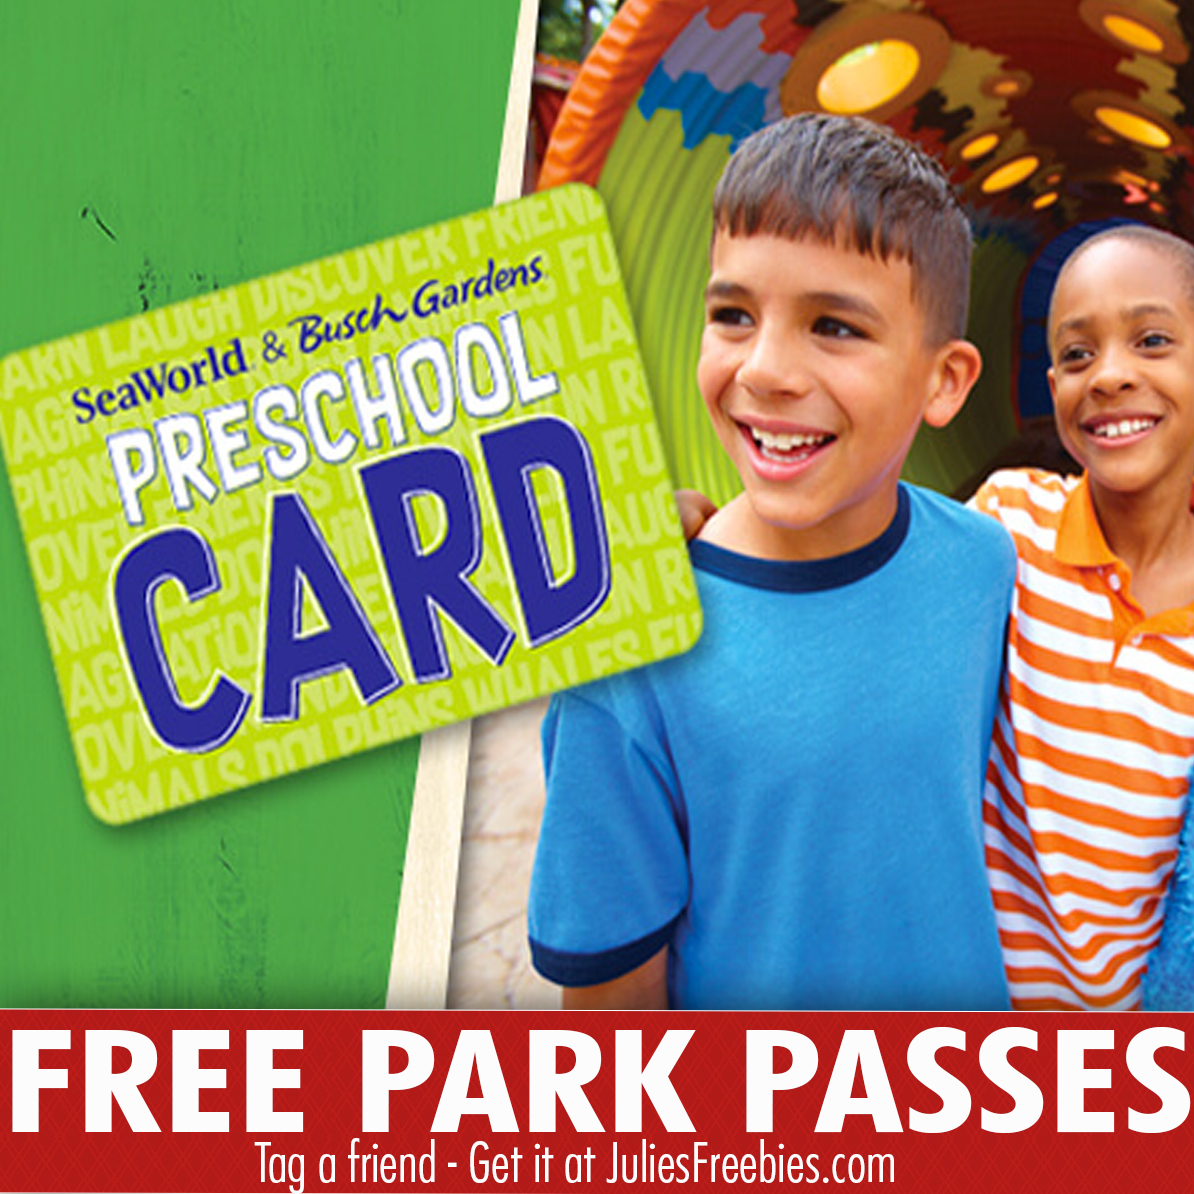 Free preschool card for busch gardens and seaworld florida only julie 39 s freebies for How to check if your busch gardens pass is expired